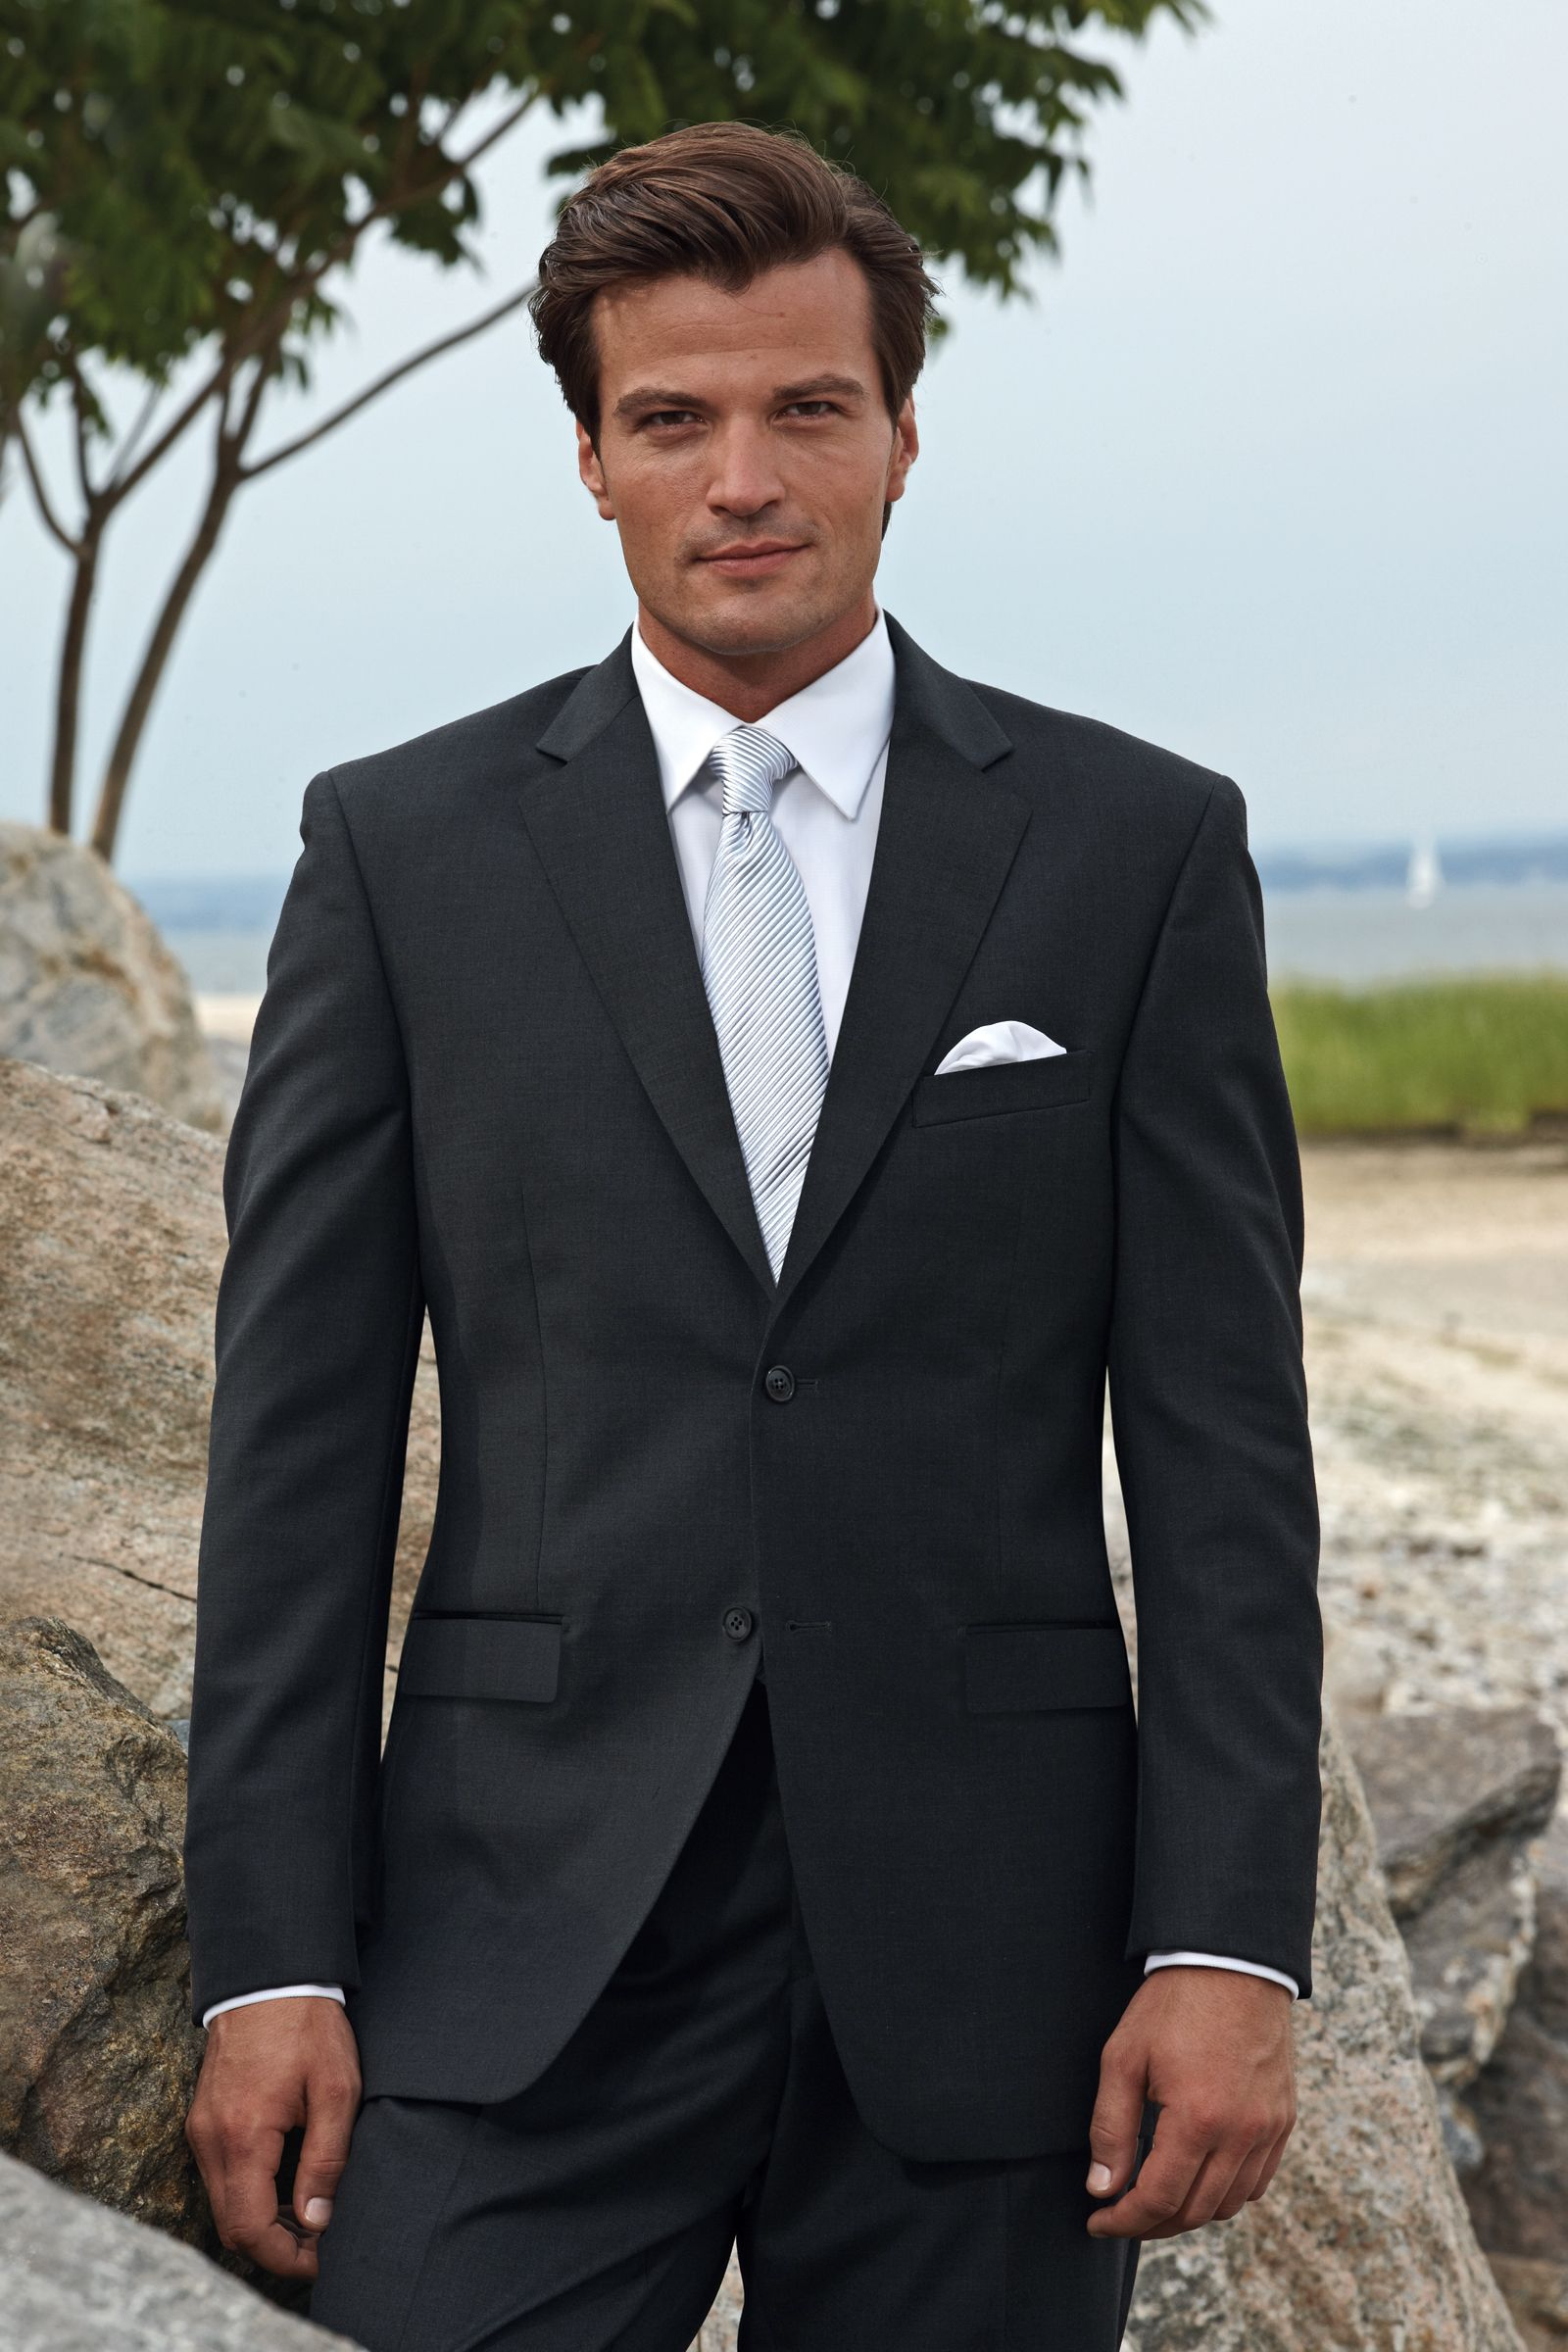 Think Paul Would Look Great In Something Like This Wonder If I Can Get Him To Consider A Charcoal Grey Suit Wedding Black Suit Wedding Grey Suit White Shirt